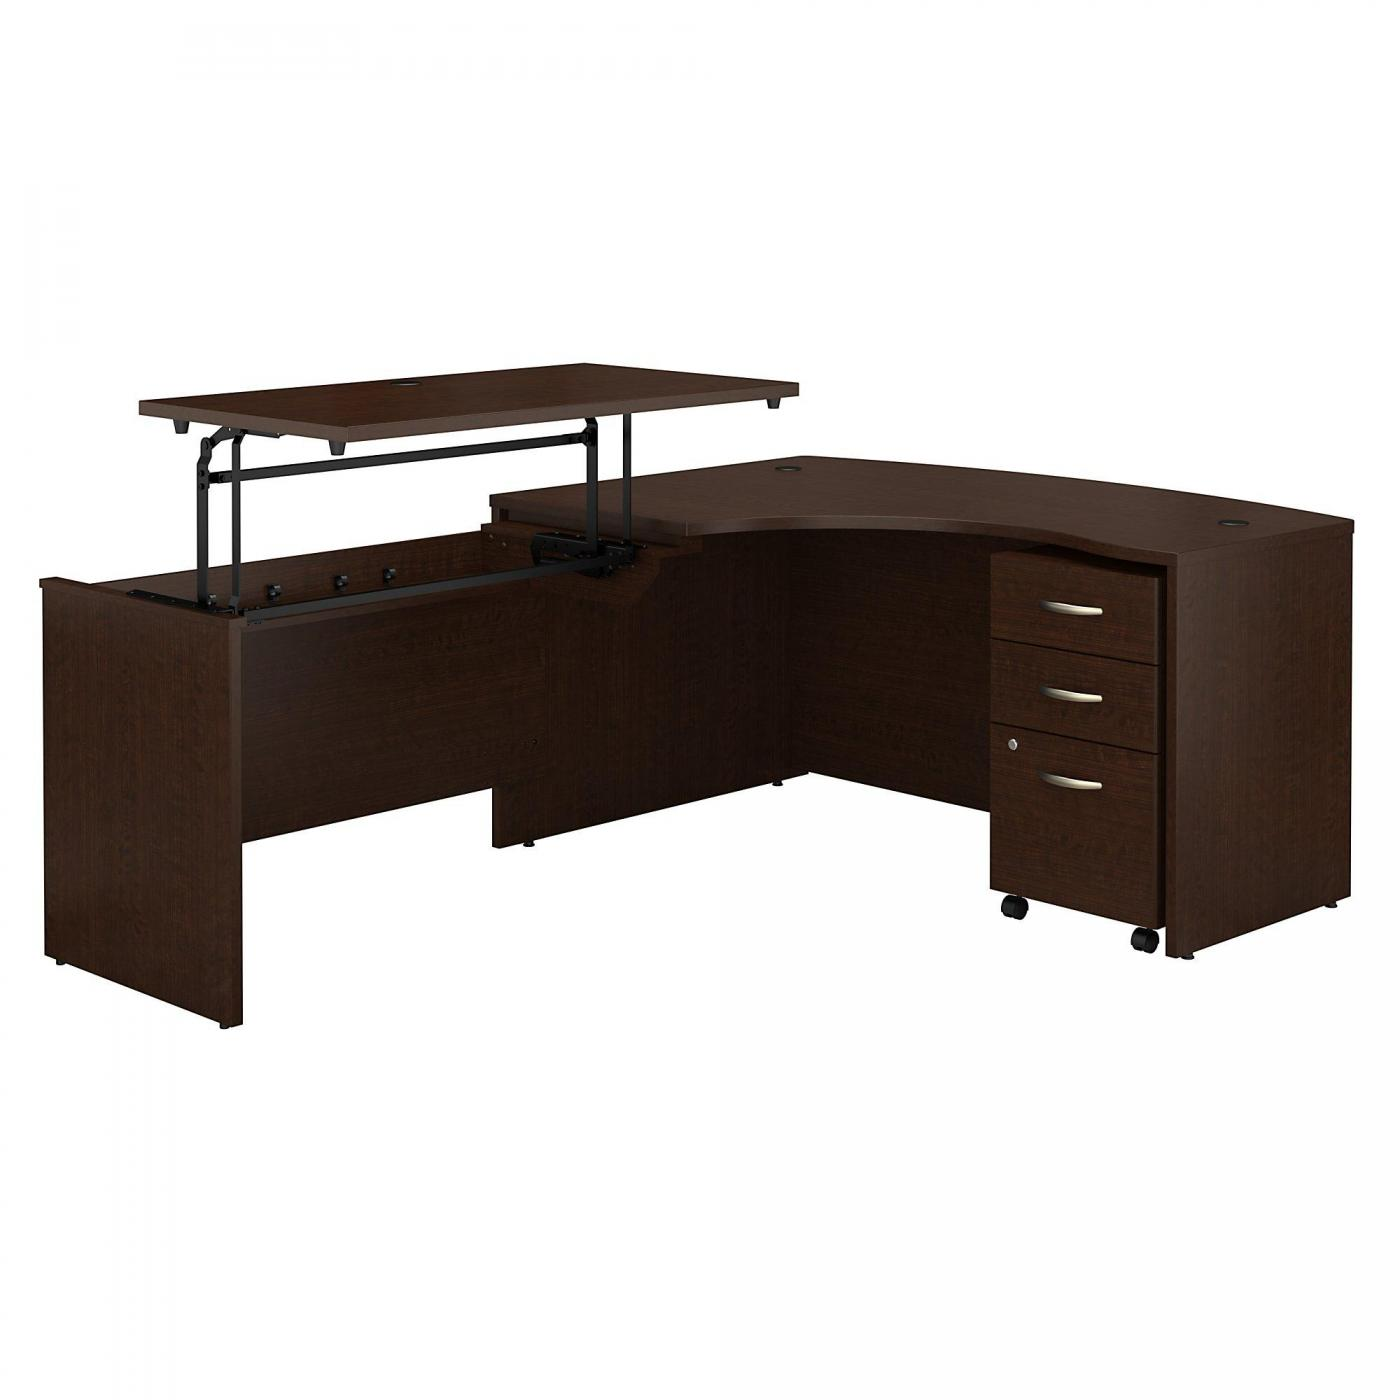 <font color=#c60><b>BUSH BUSINESS FURNITURE SERIES C 60W X 43D RIGHT HAND 3 POSITION SIT TO STAND L SHAPED DESK WITH MOBILE FILE CABINET. FREE SHIPPING</font></b>